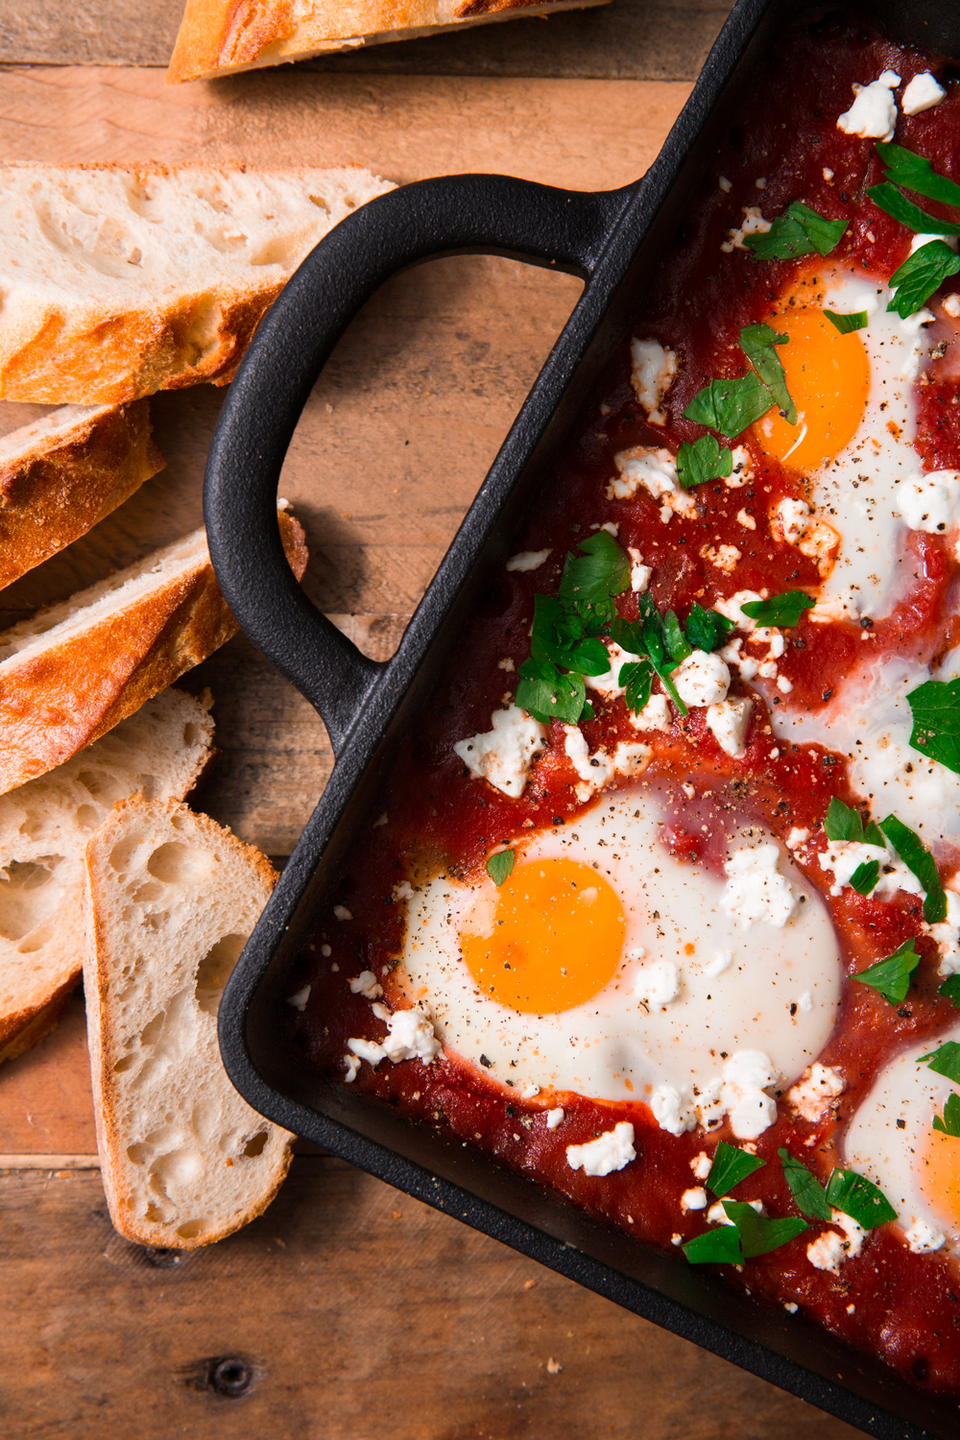 "<p>A crusty piece of bread is a must for sopping up the sauce.</p><p>Get the recipe from <a href=""https://www.delish.com/cooking/recipe-ideas/recipes/a52277/shakshuka-with-feta-and-parsley-recipe/"" rel=""nofollow noopener"" target=""_blank"" data-ylk=""slk:Delish"" class=""link rapid-noclick-resp"">Delish</a>.</p>"